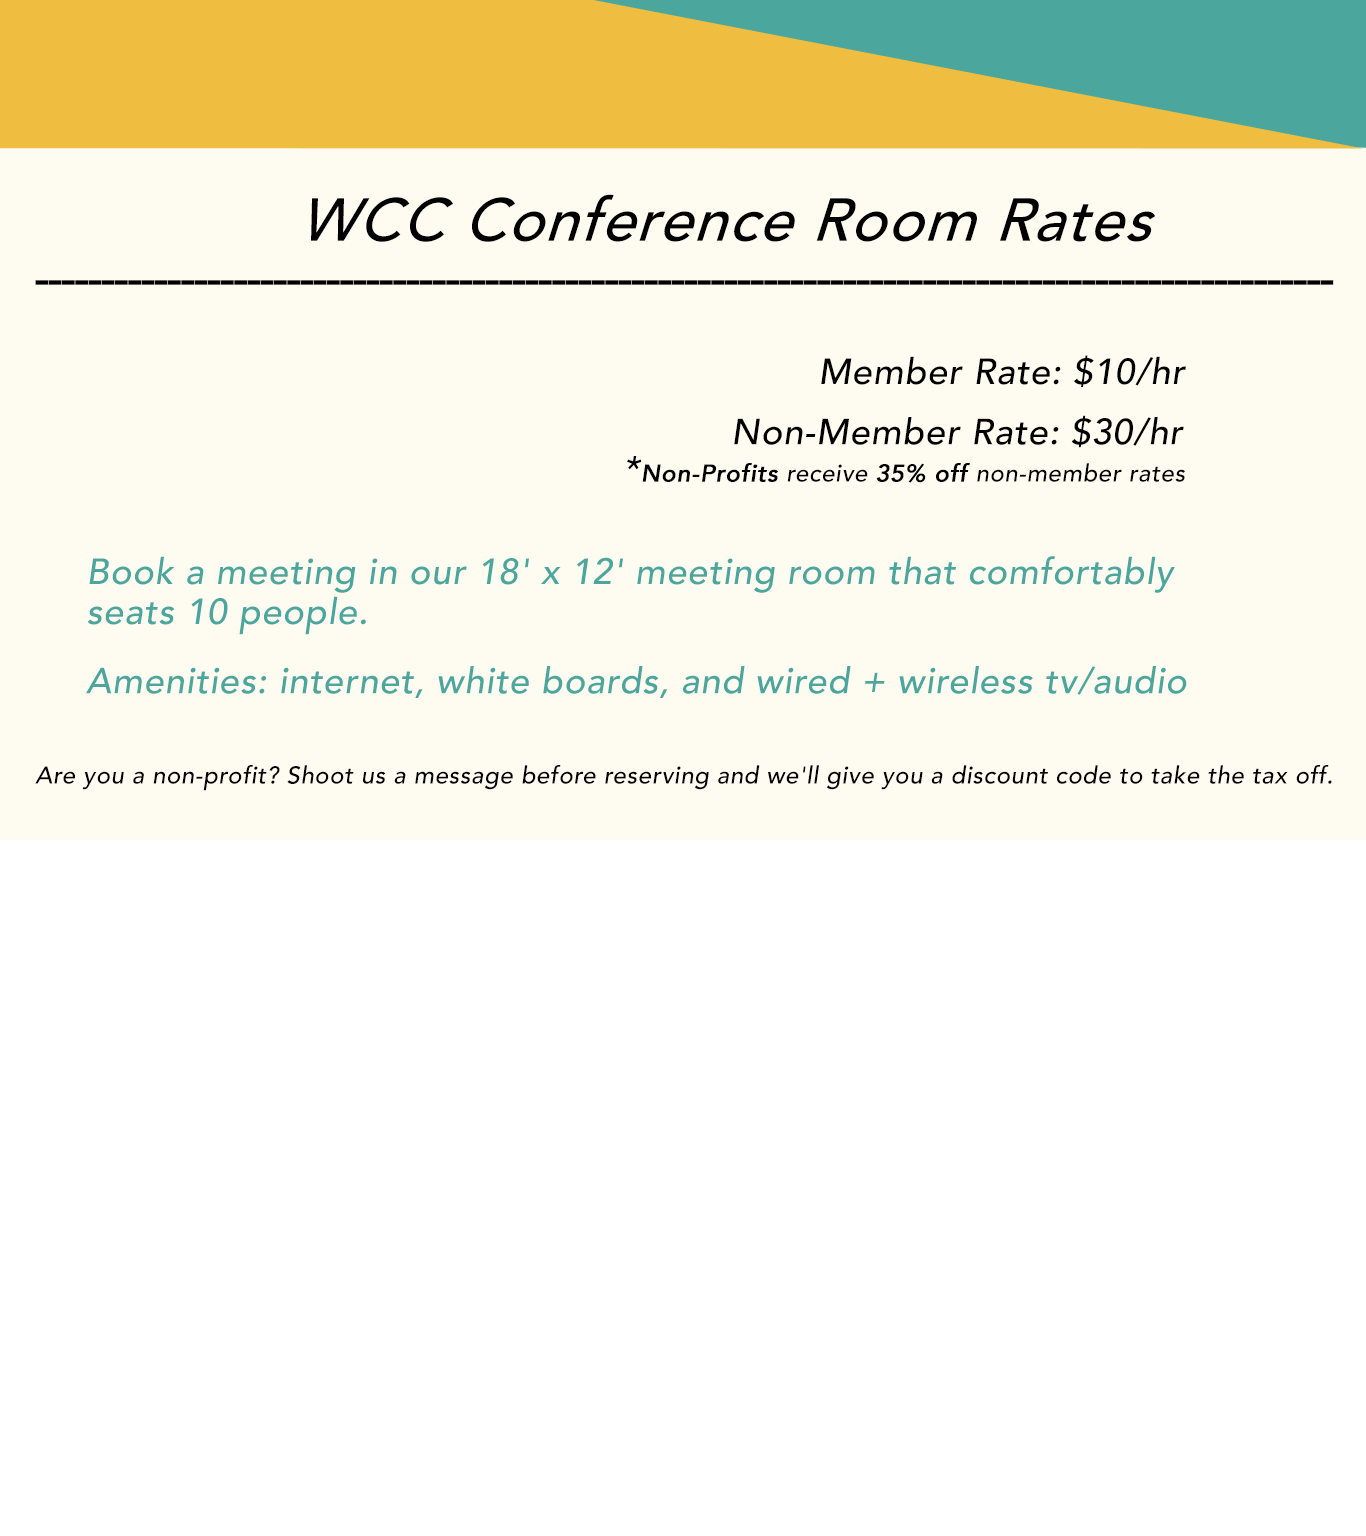 WCC RATES BANNER.png